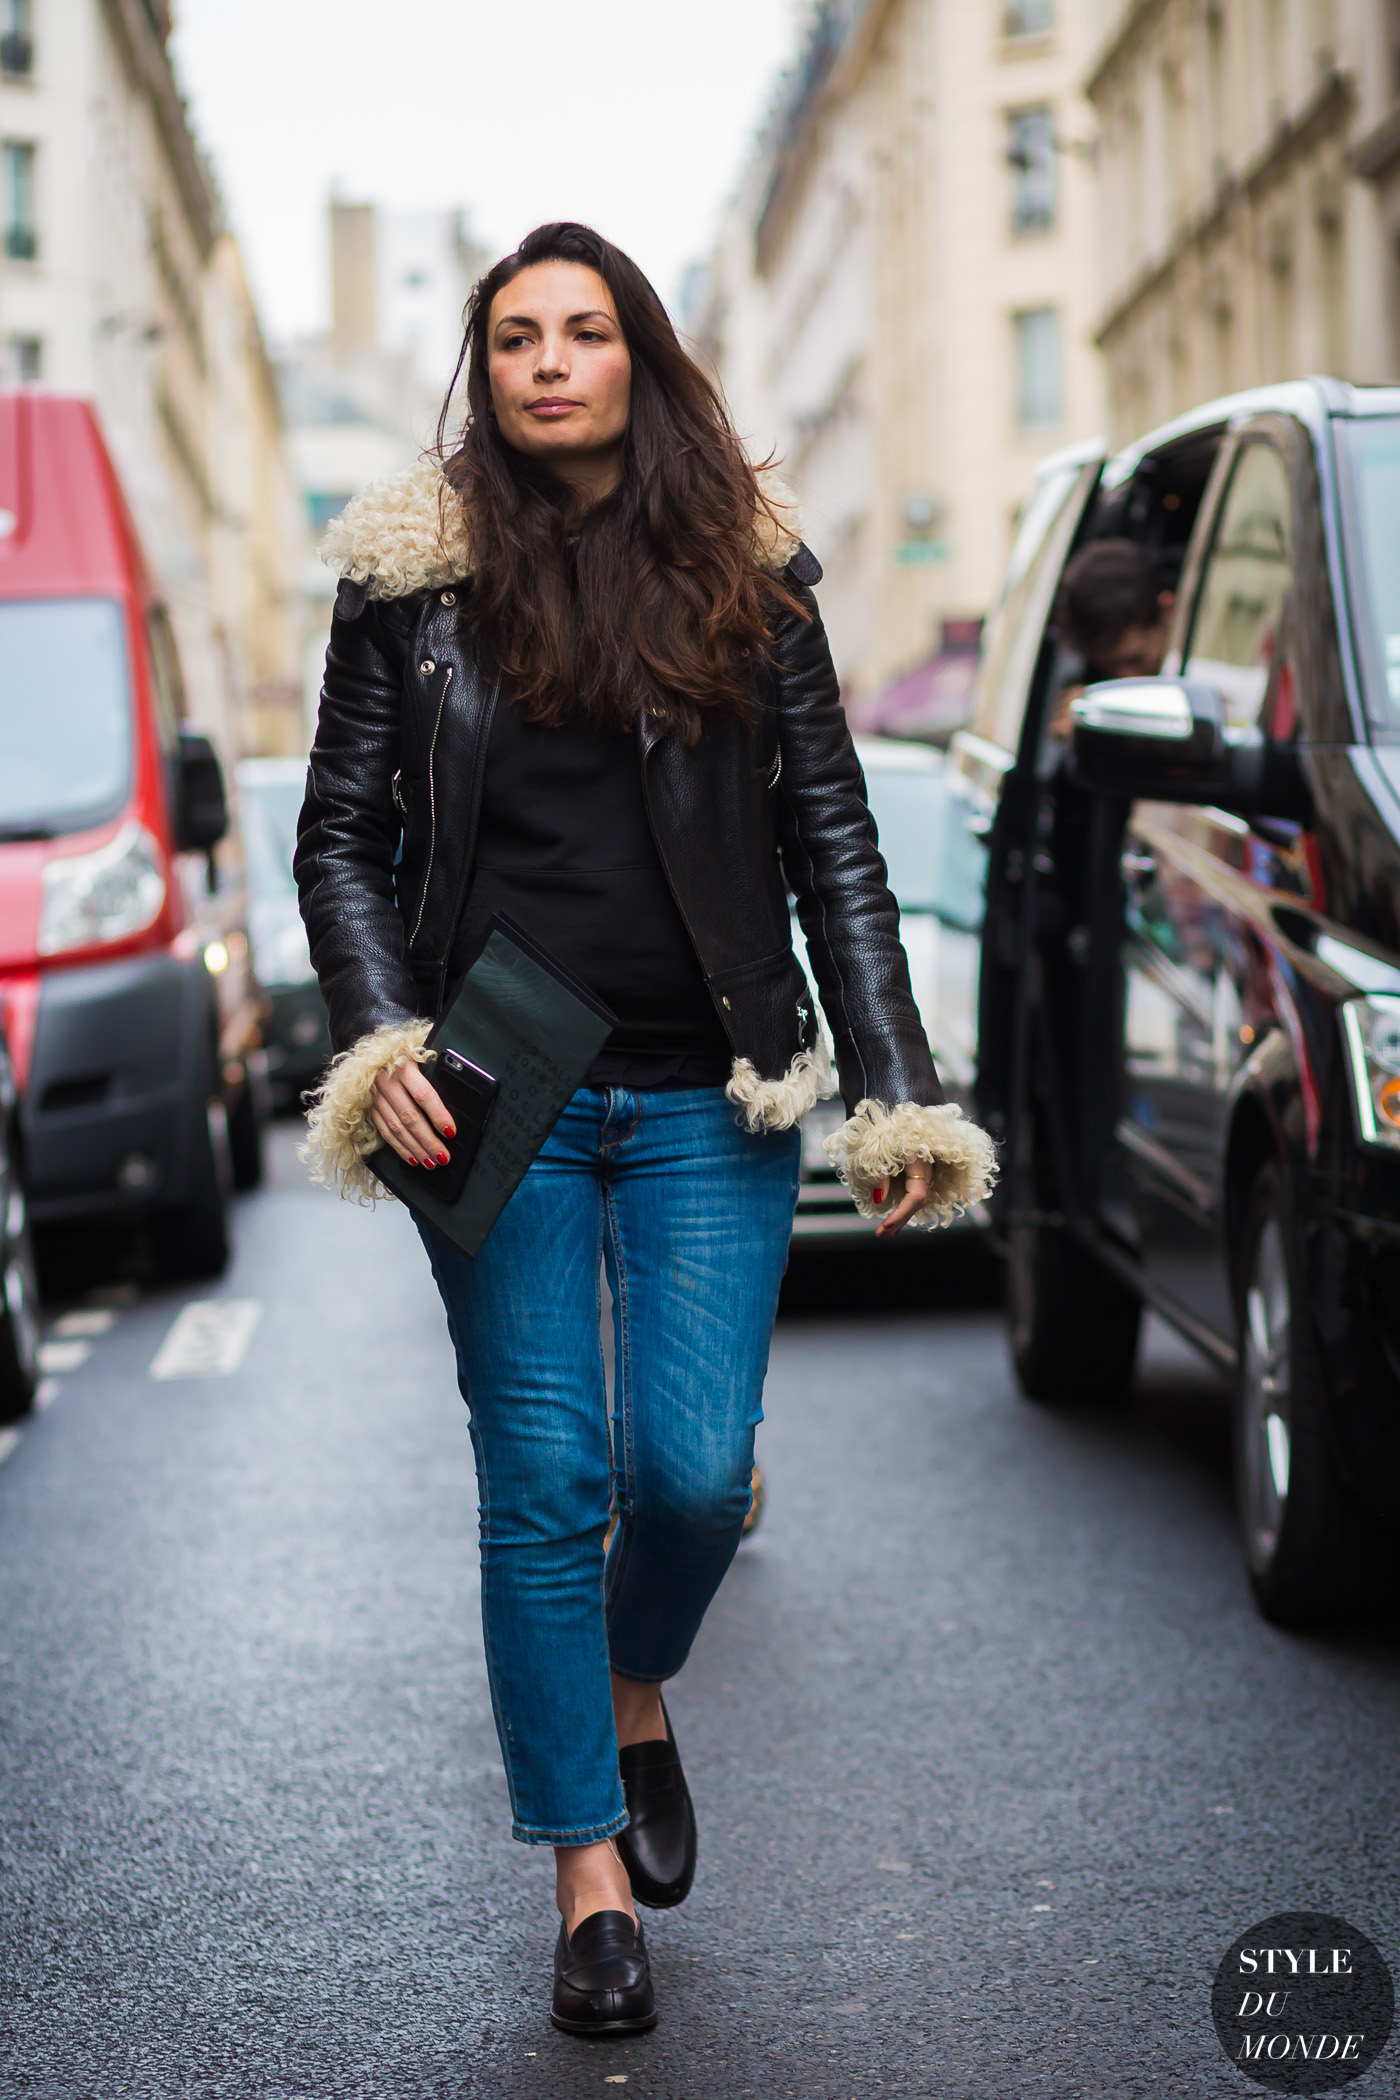 Laetitia Paul Street Style Street Fashion Streetsnaps by STYLEDUMONDE Street Style Fashion Photography